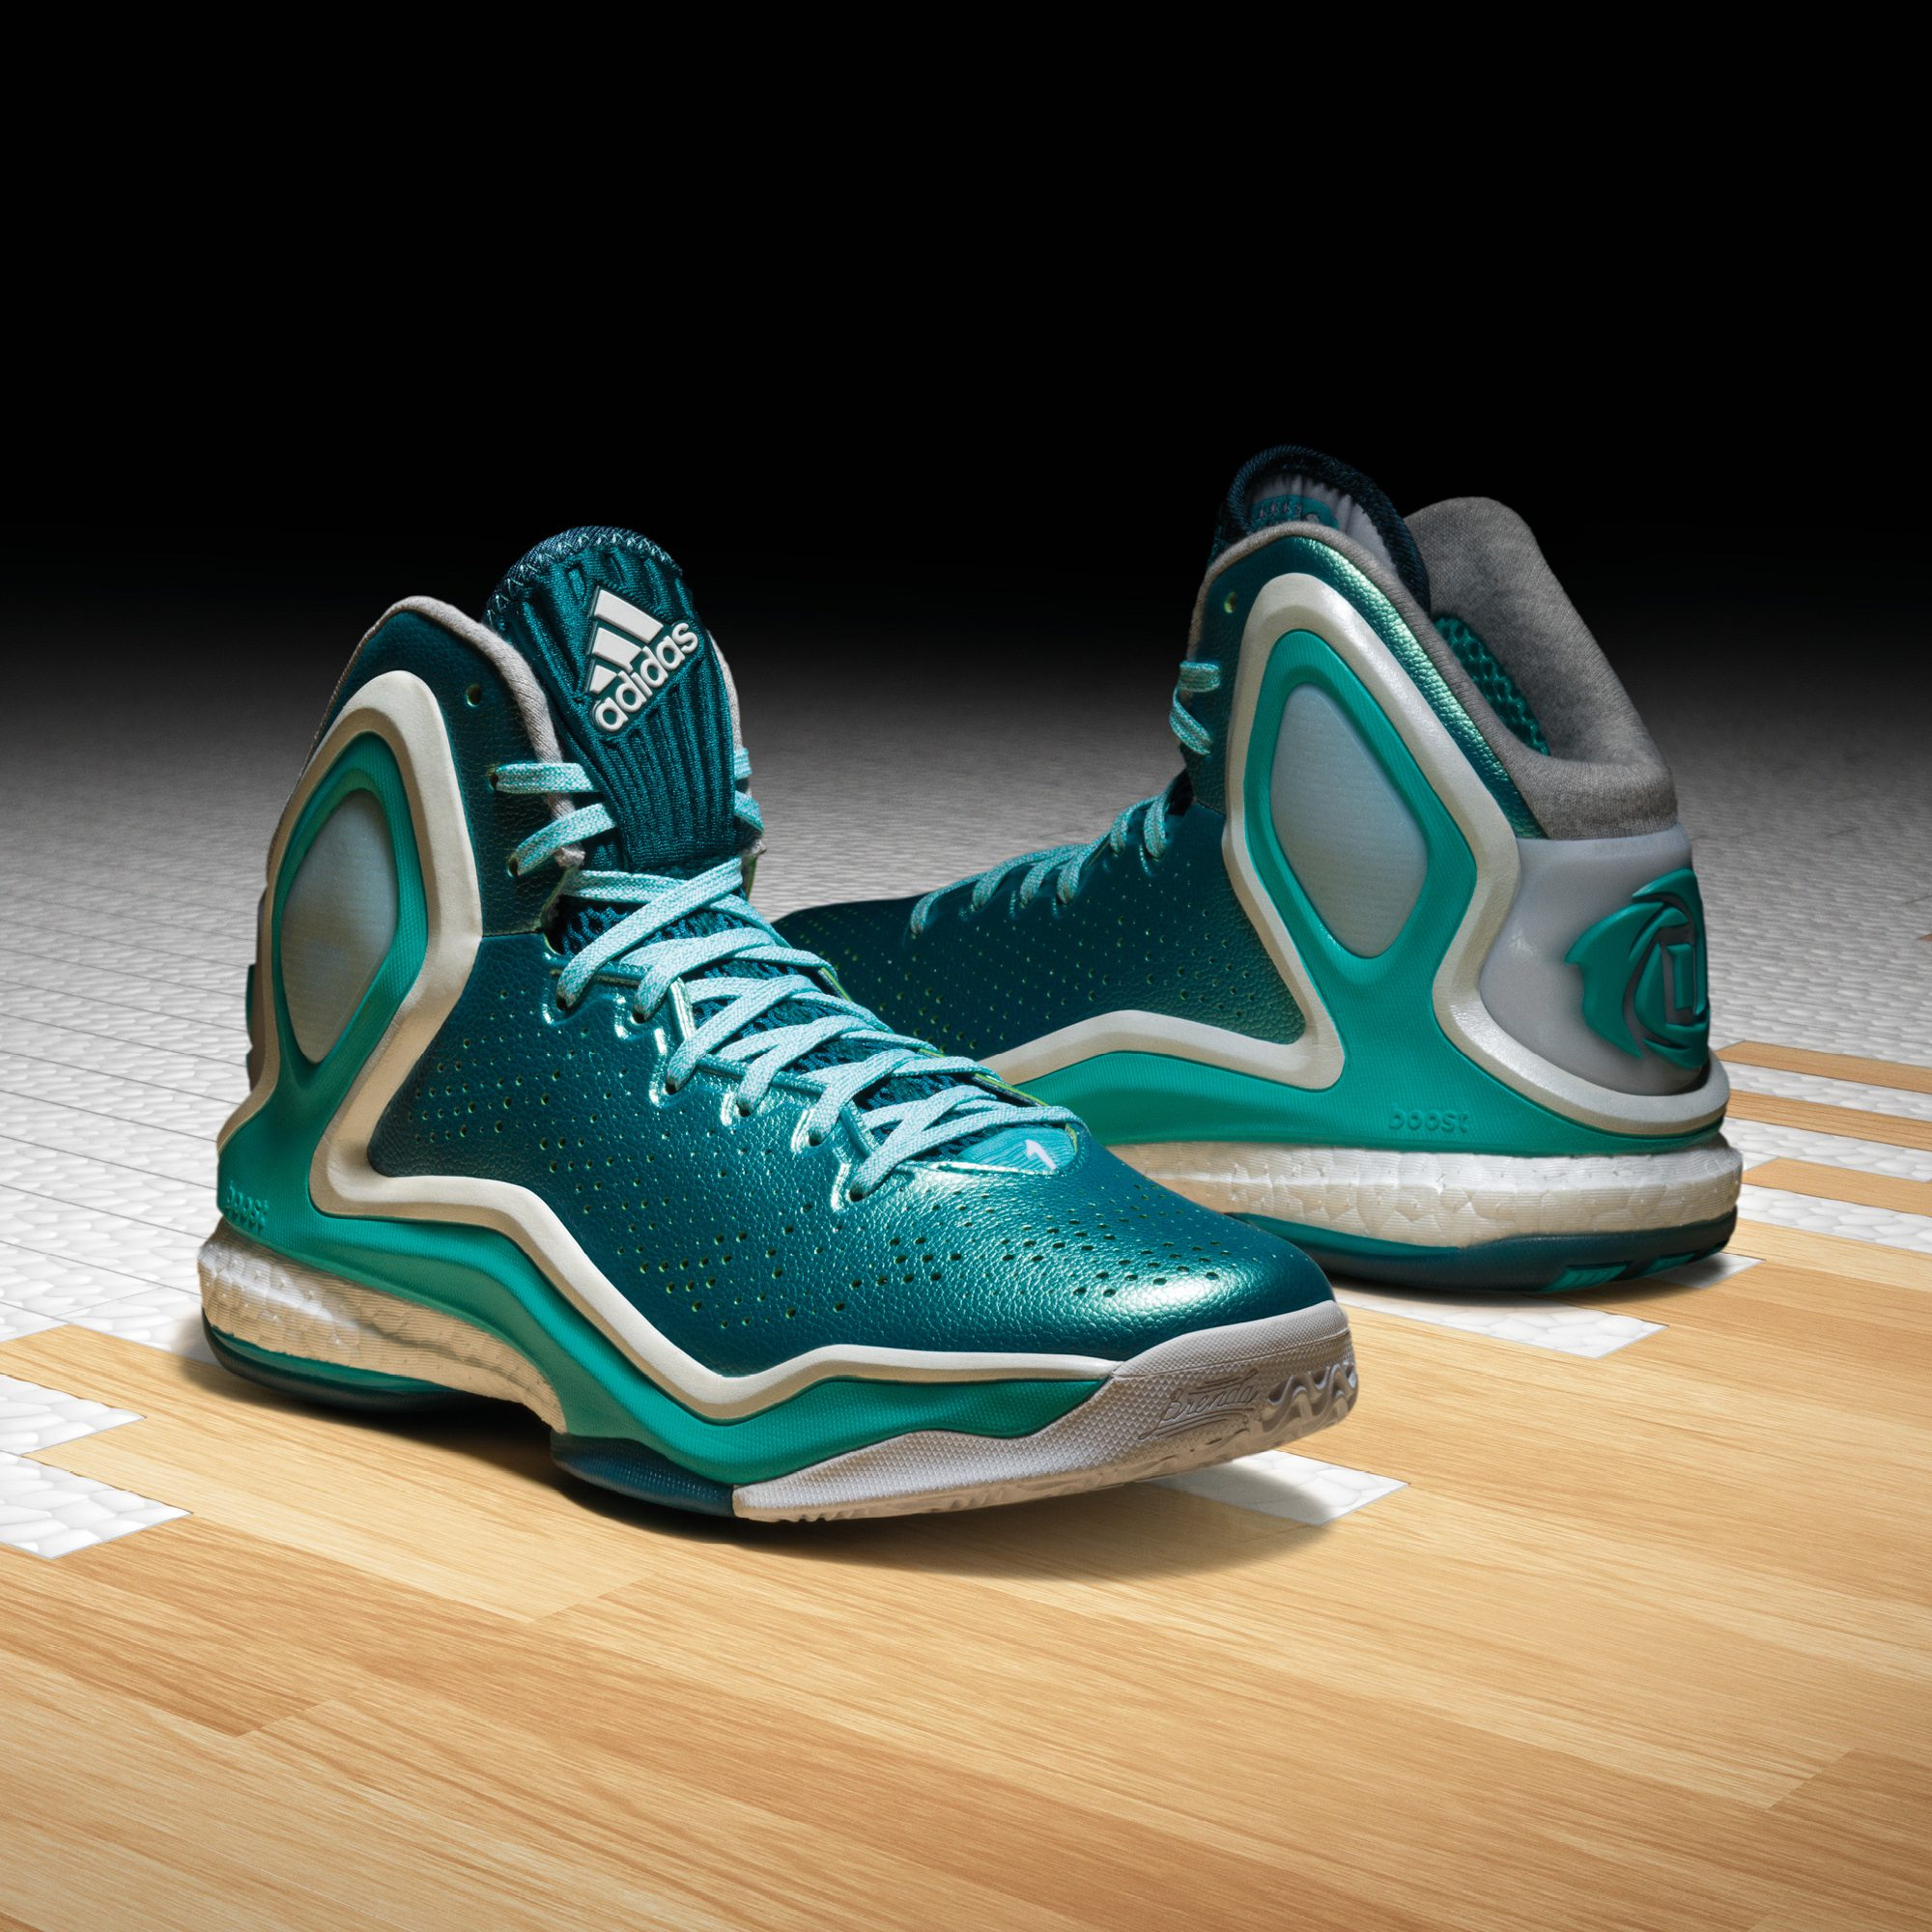 48b88de96ad1 adidas D Rose 5 Boost Archives - Page 2 of 2 - Hardwood and Hollywood